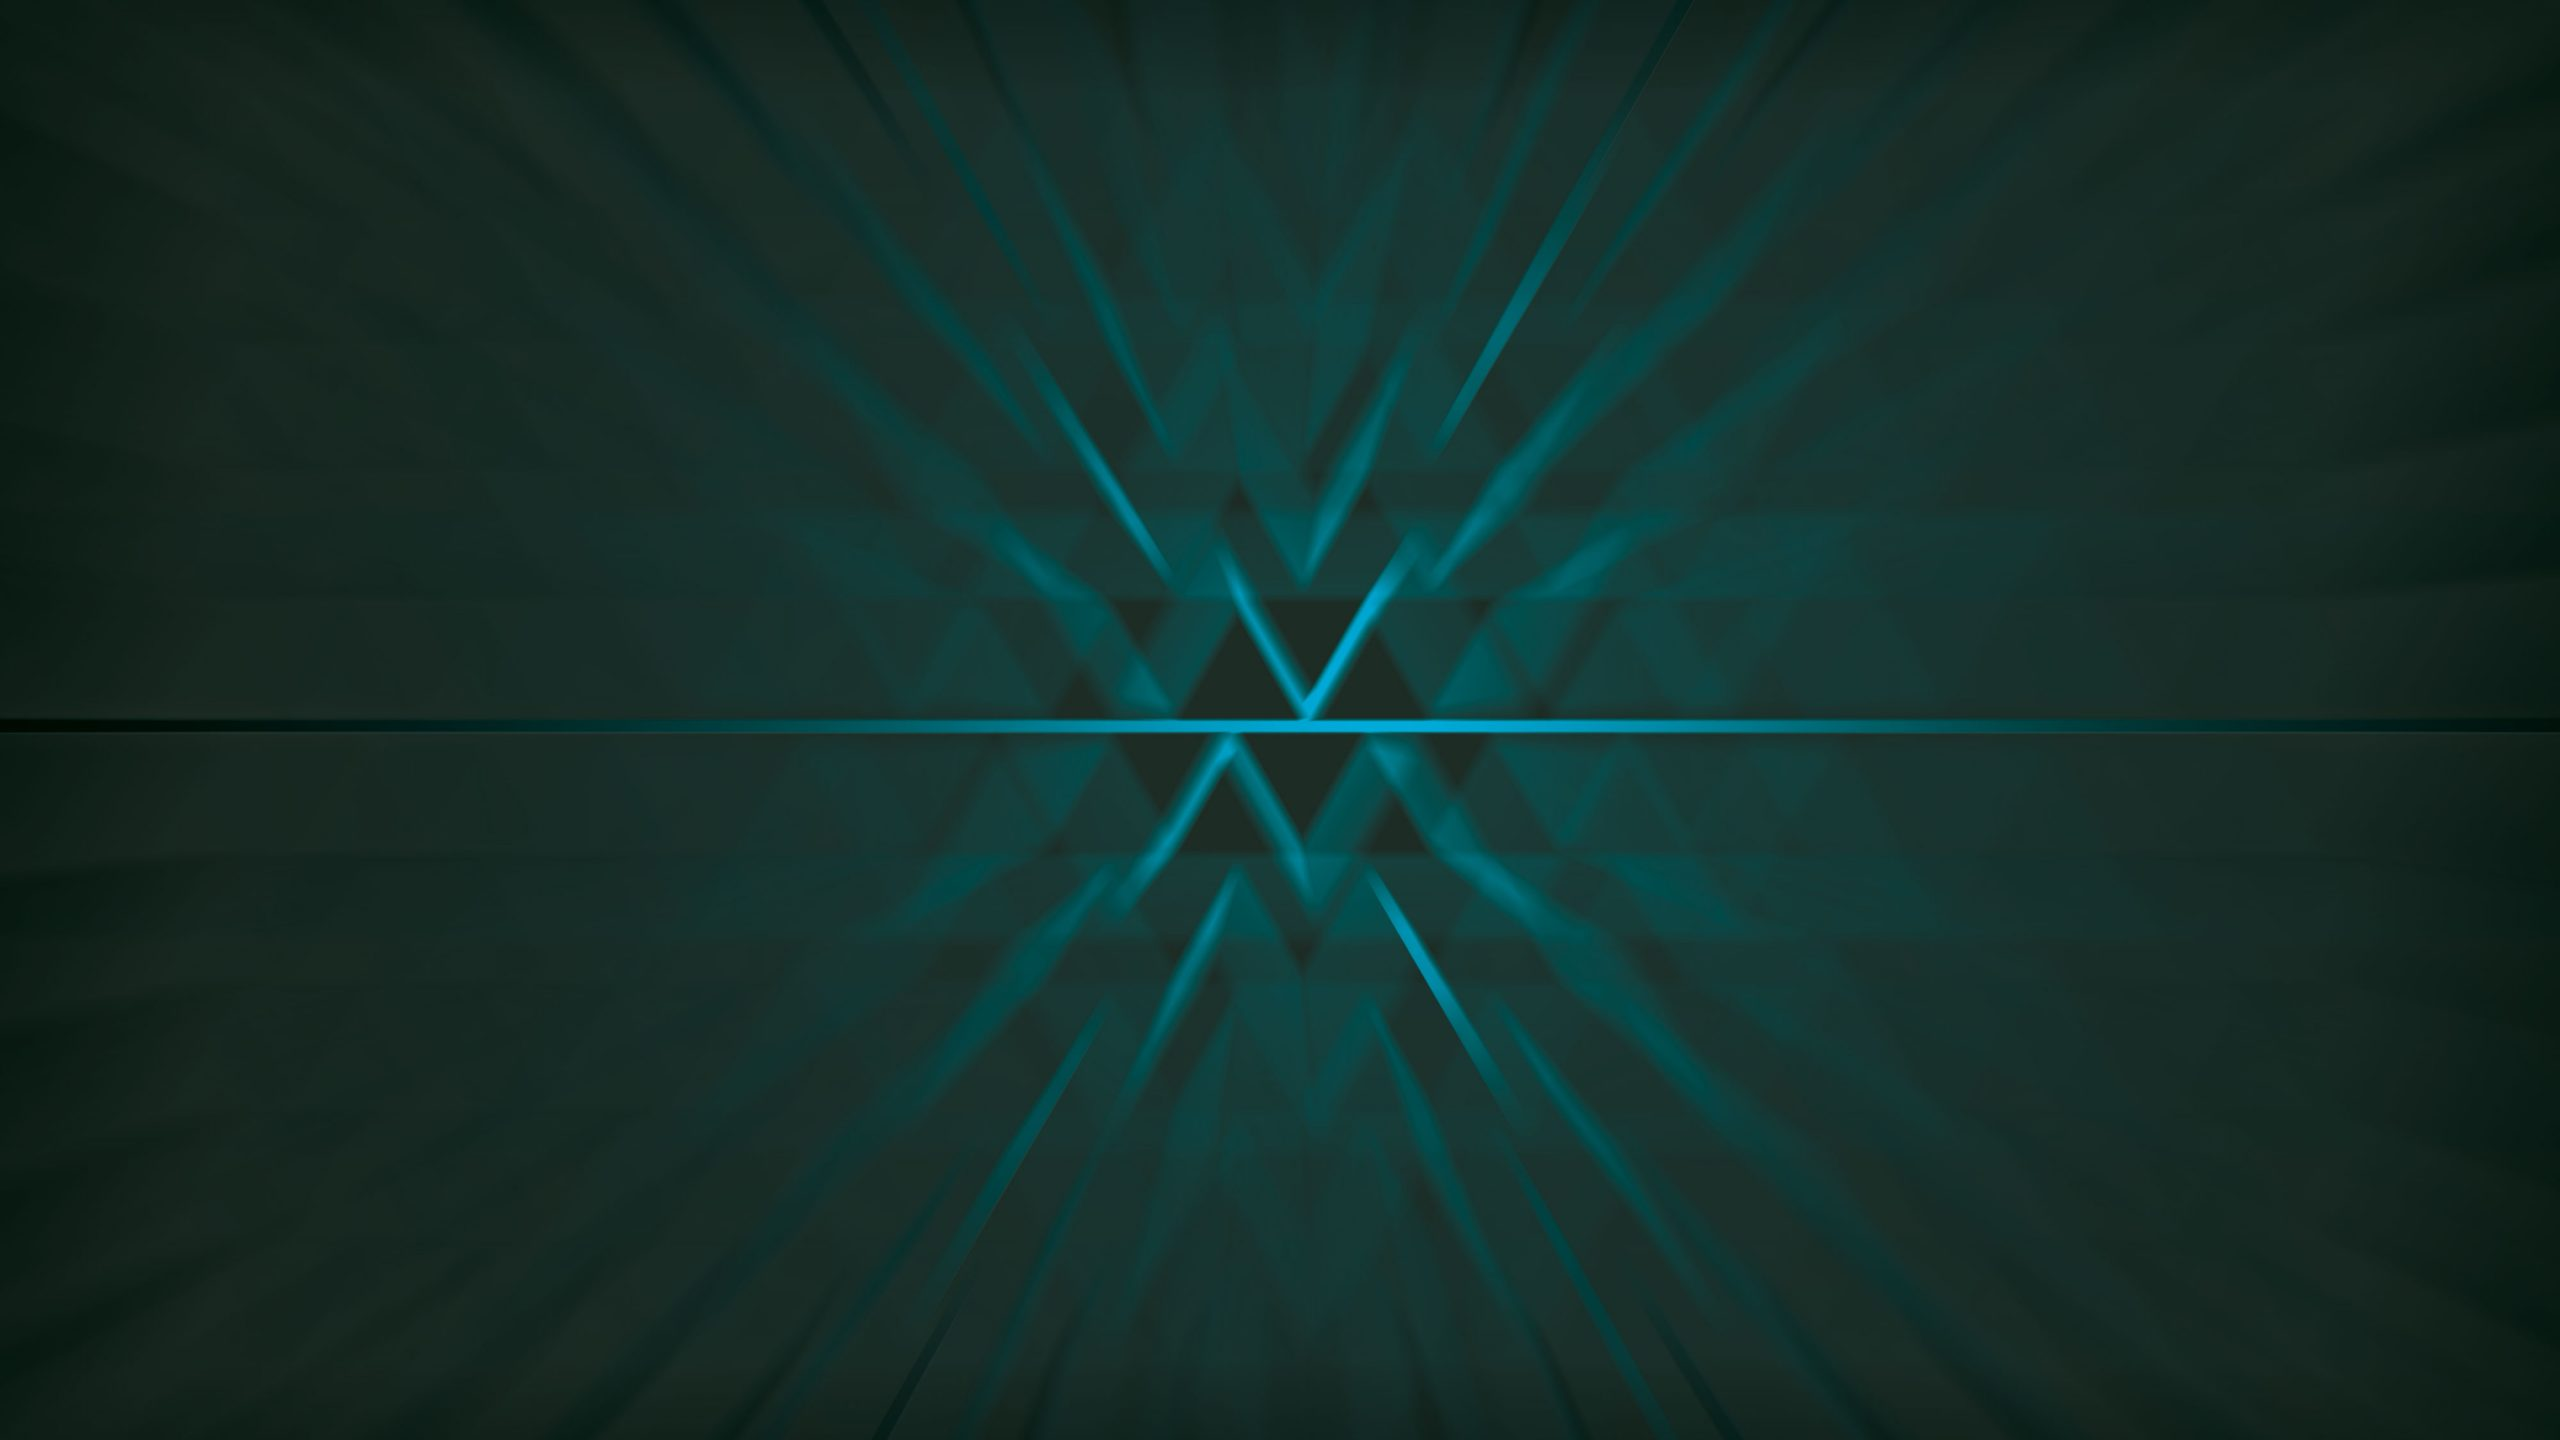 Blue pattern abstract wallpaper